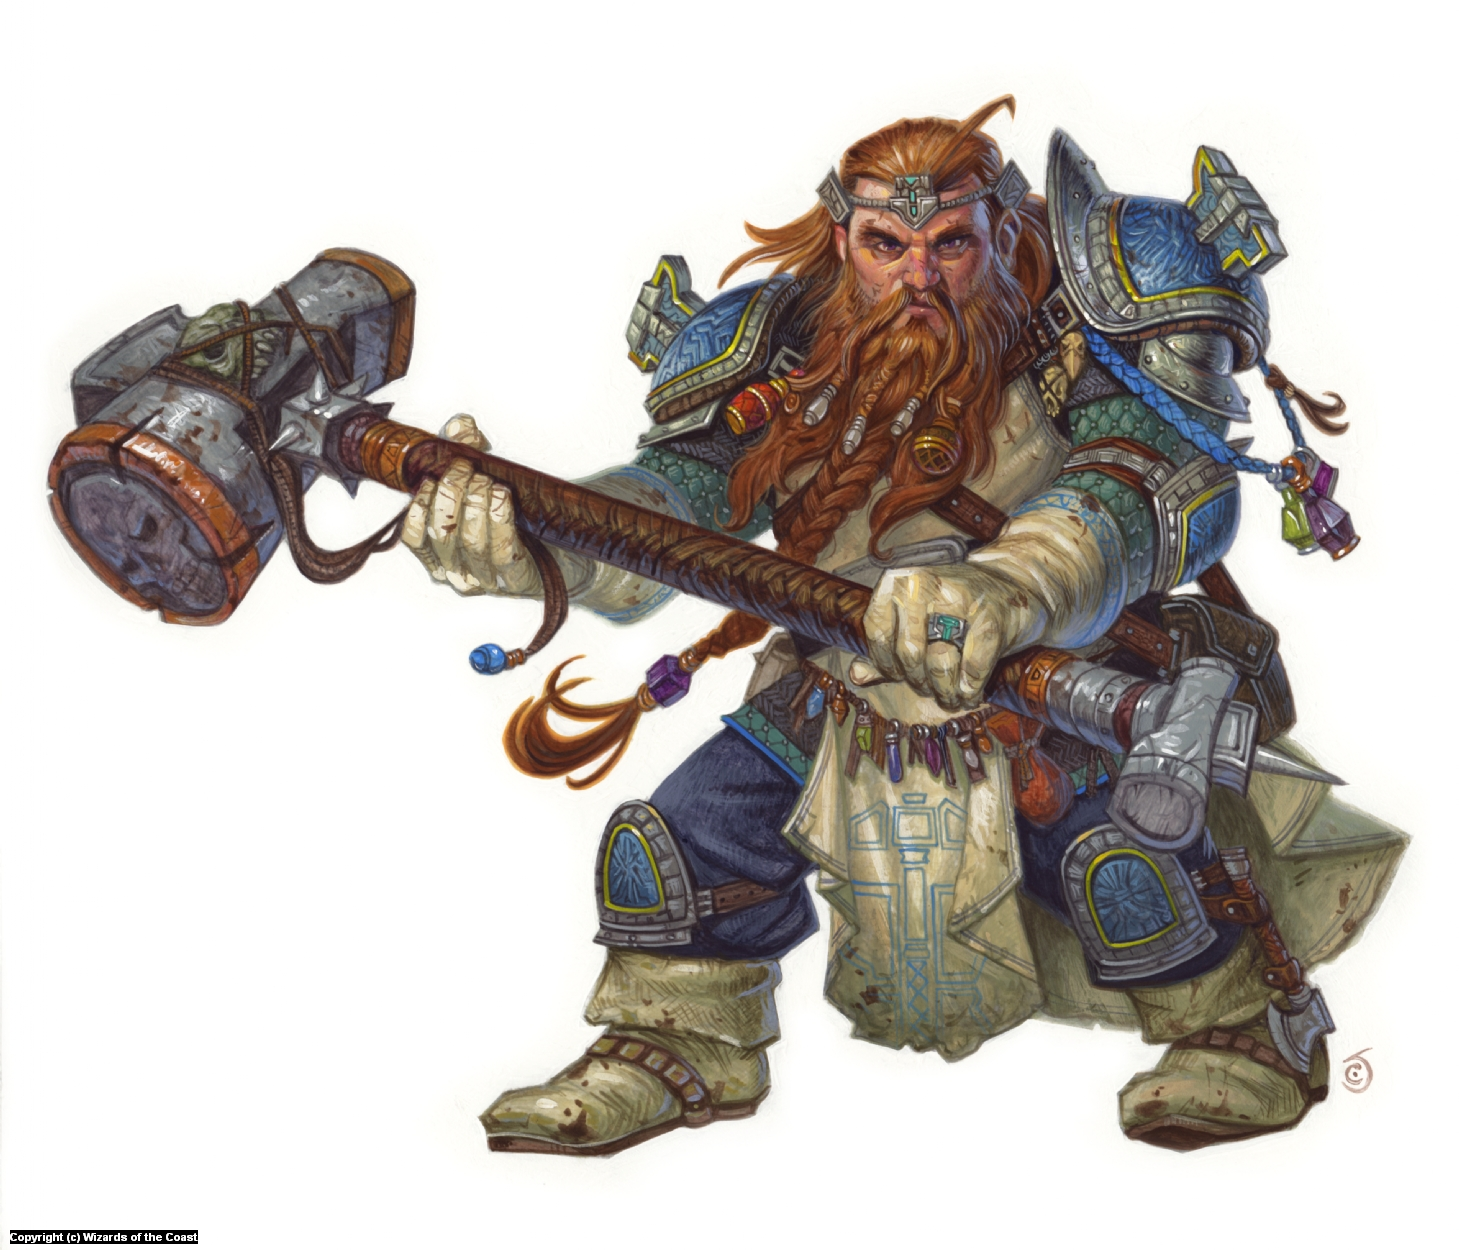 Dwarf Cleric Artwork by Chris Seaman